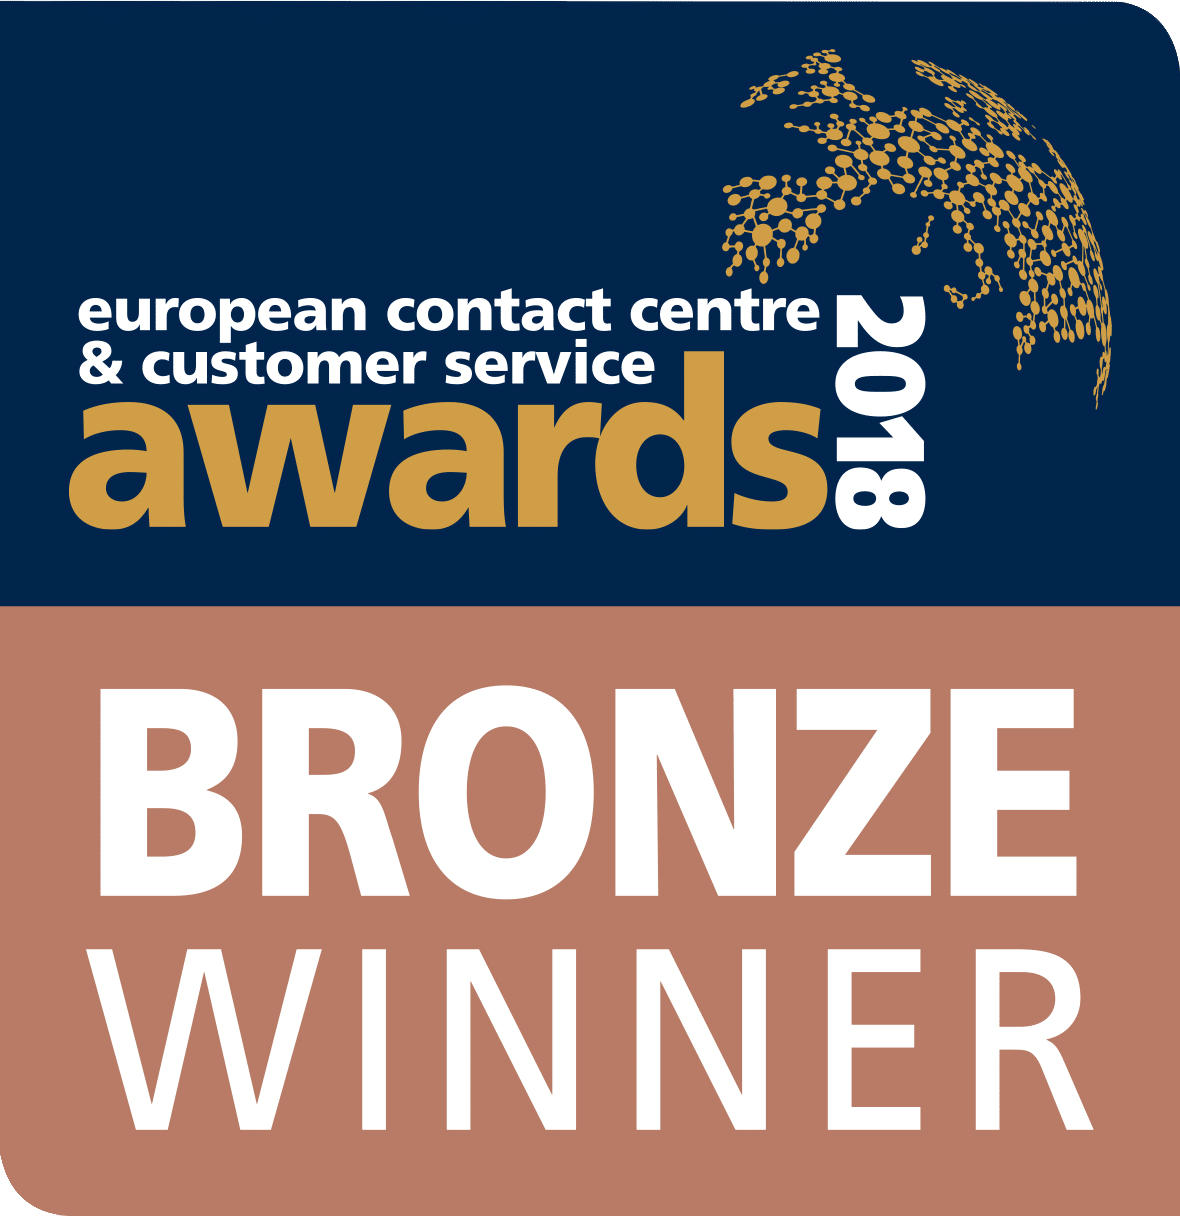 ecccsa-bronze-winner-logo-icon-contact-call-centre